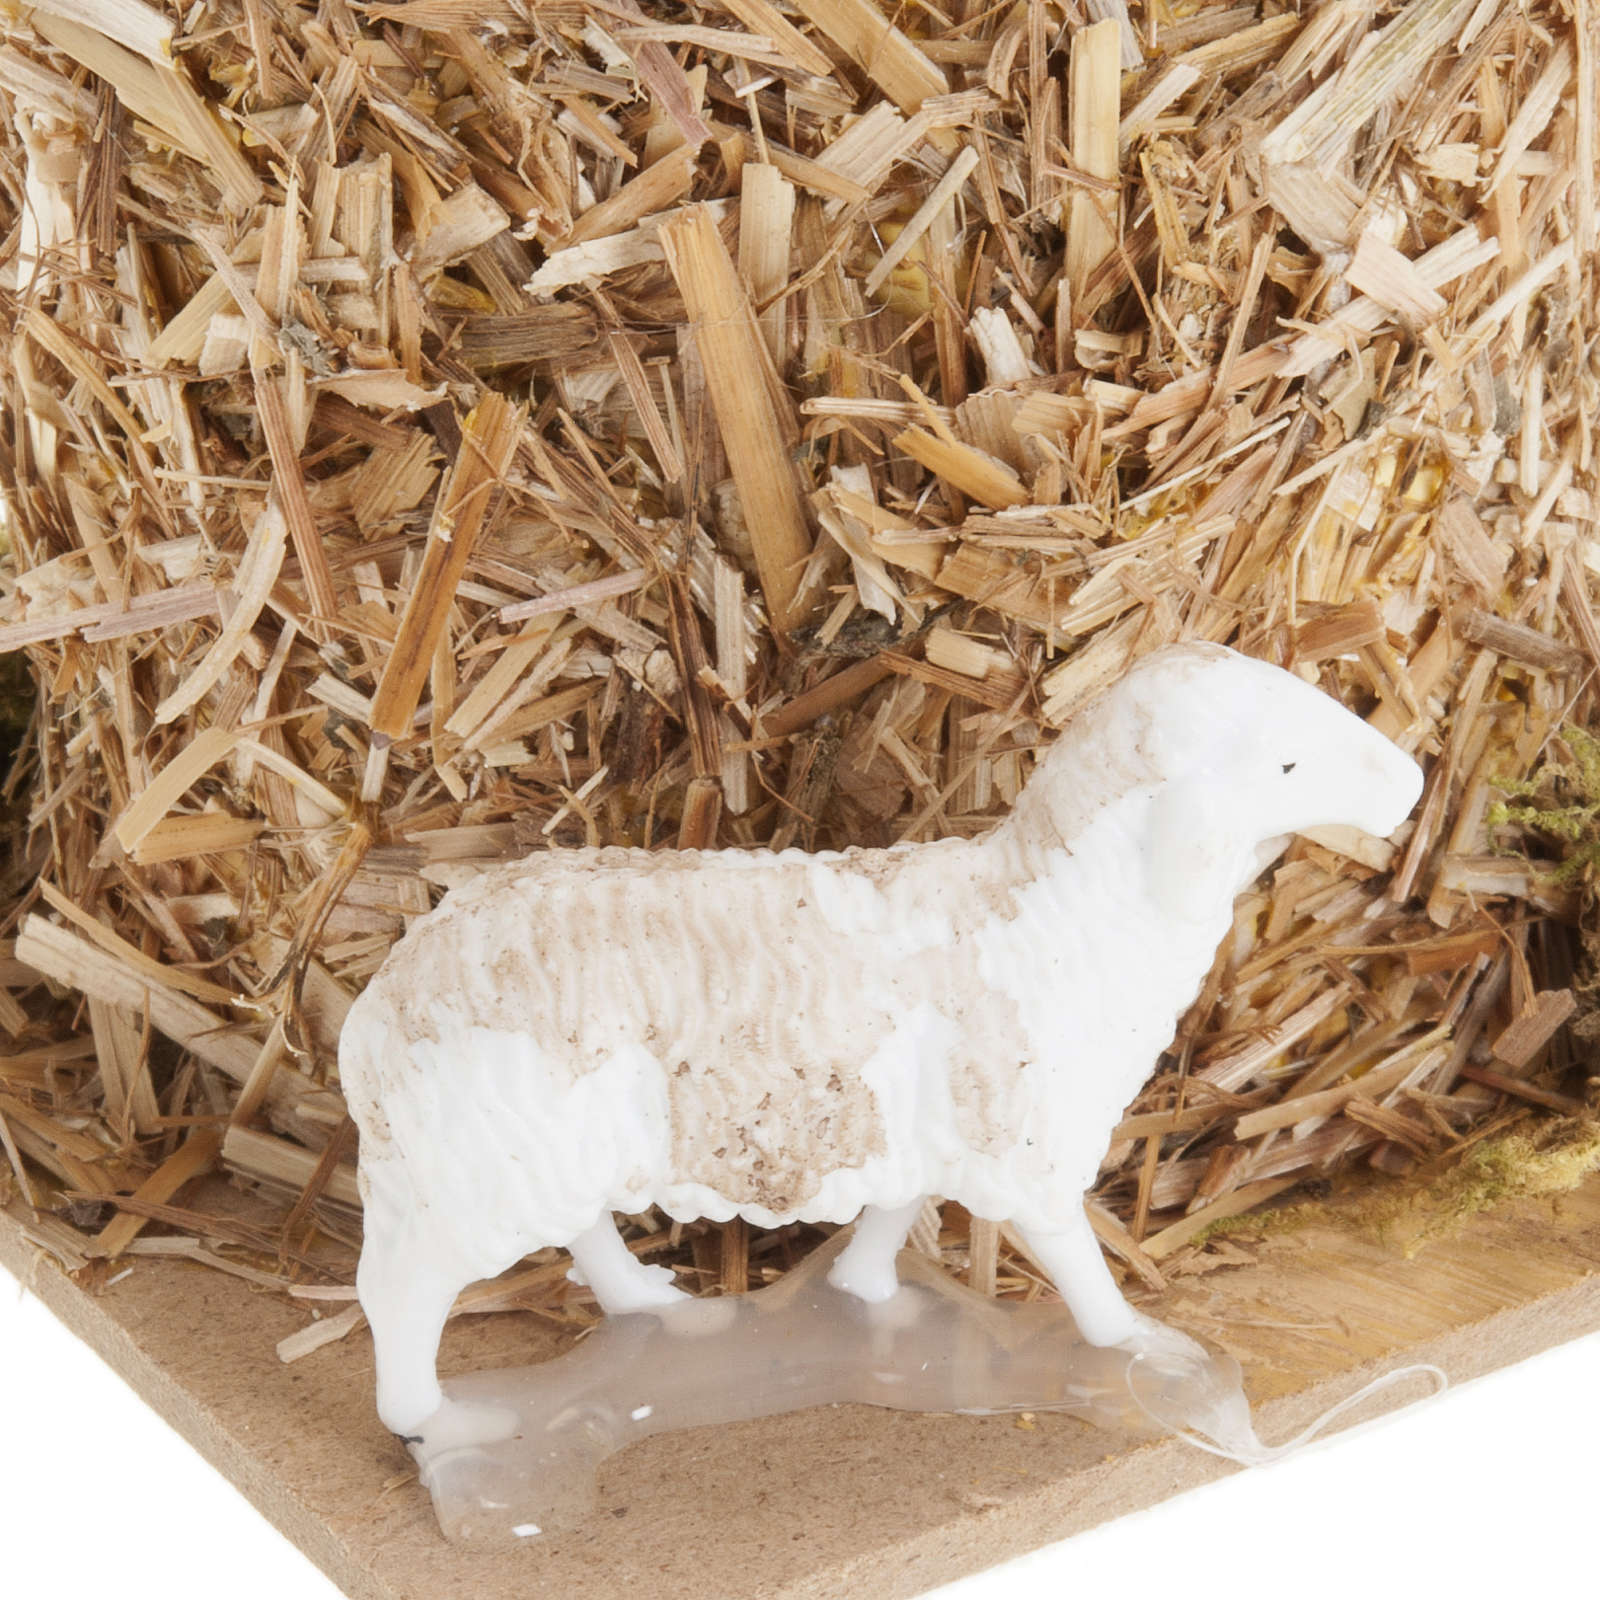 Nativity scene, sheaf of straw with sheep 10, 12cm 3